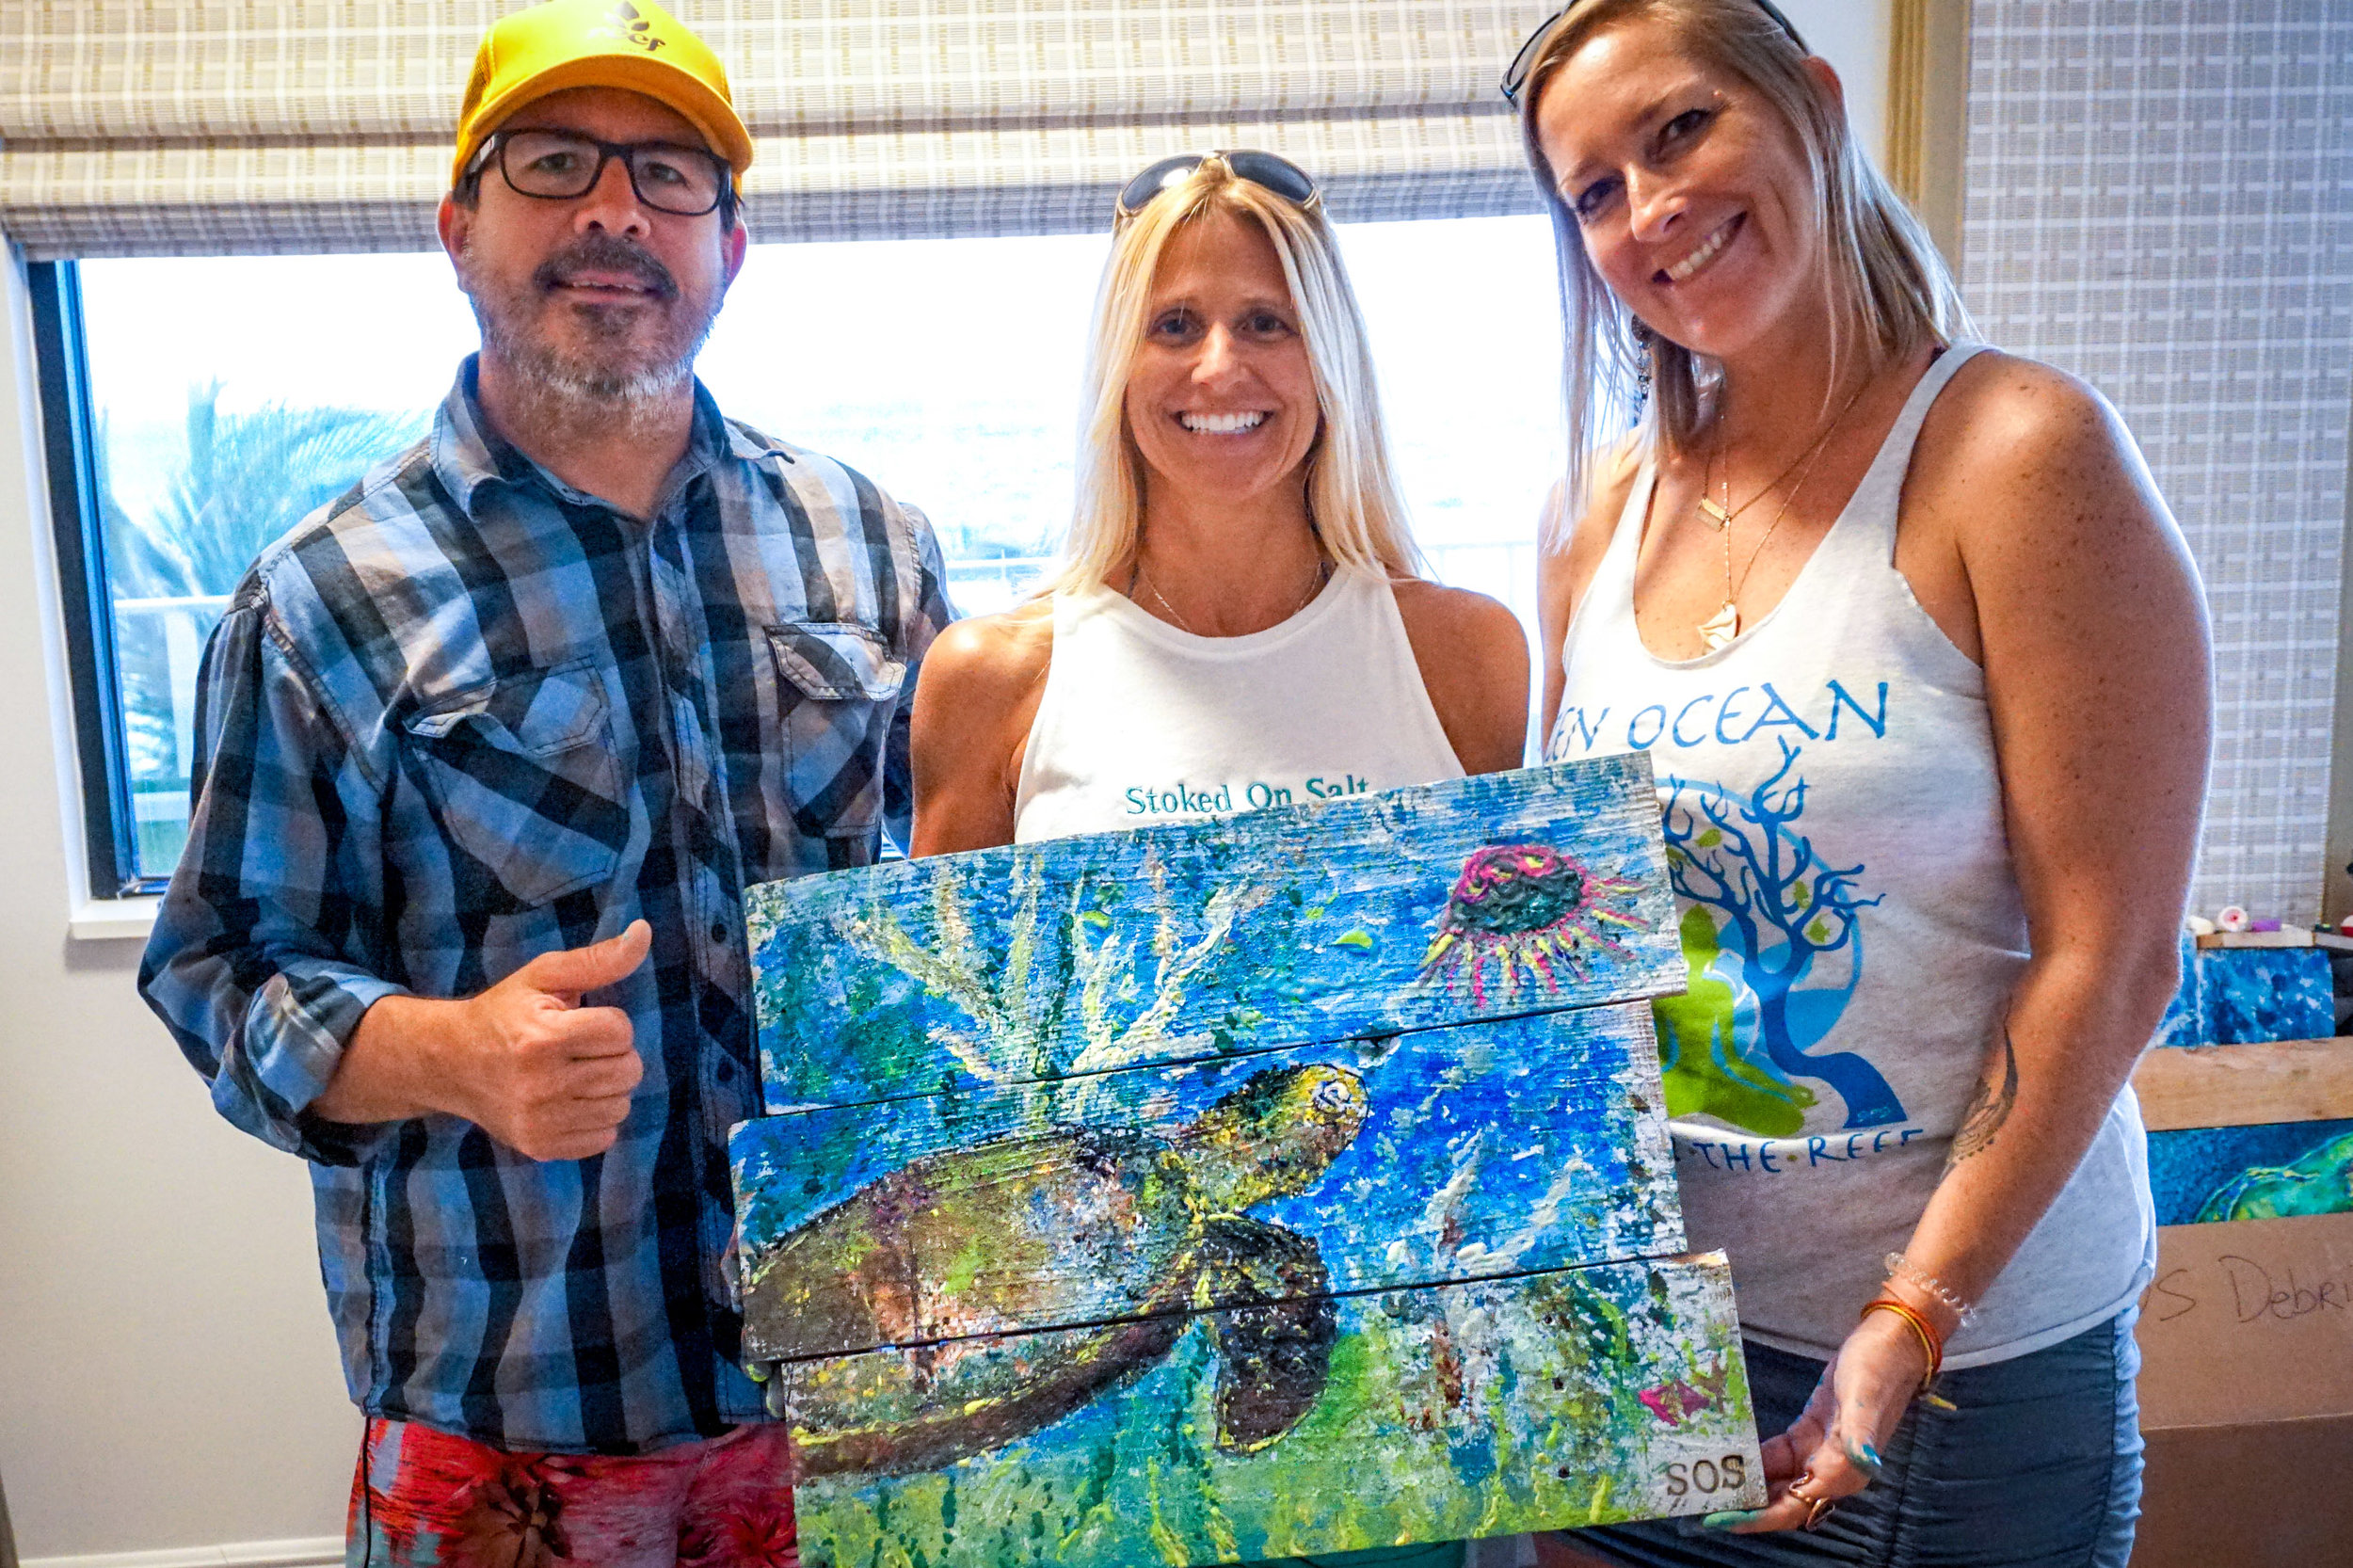 """Pay, Lisa Miceli of SOS, and Paola with our """"trashy art"""" made entirely from marine litter."""